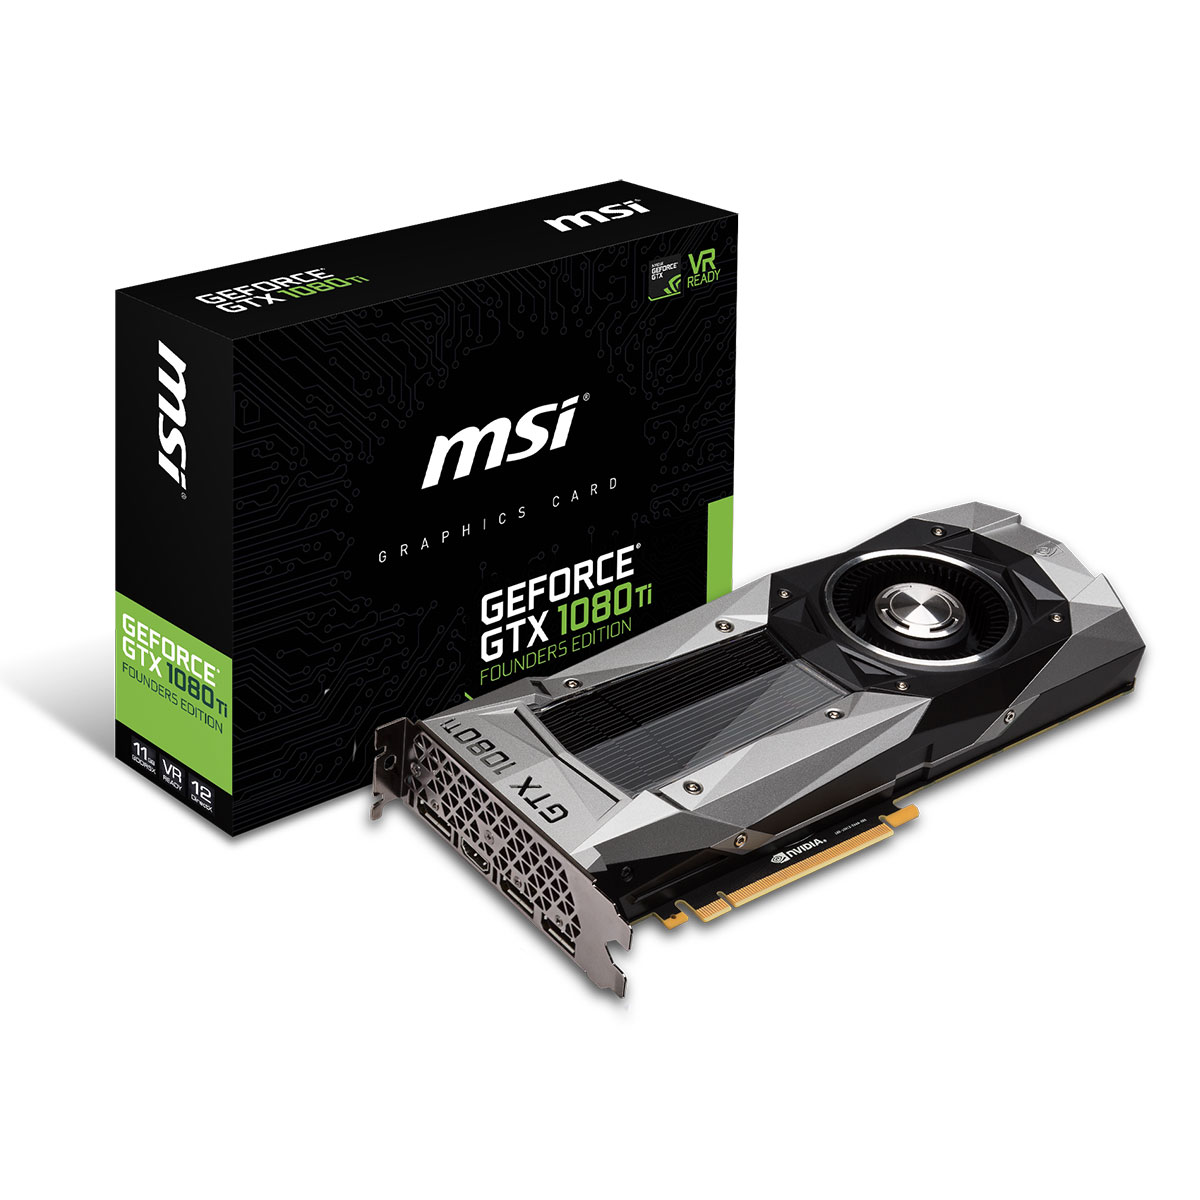 msi geforce gtx 1080 ti founders edition carte graphique msi sur. Black Bedroom Furniture Sets. Home Design Ideas